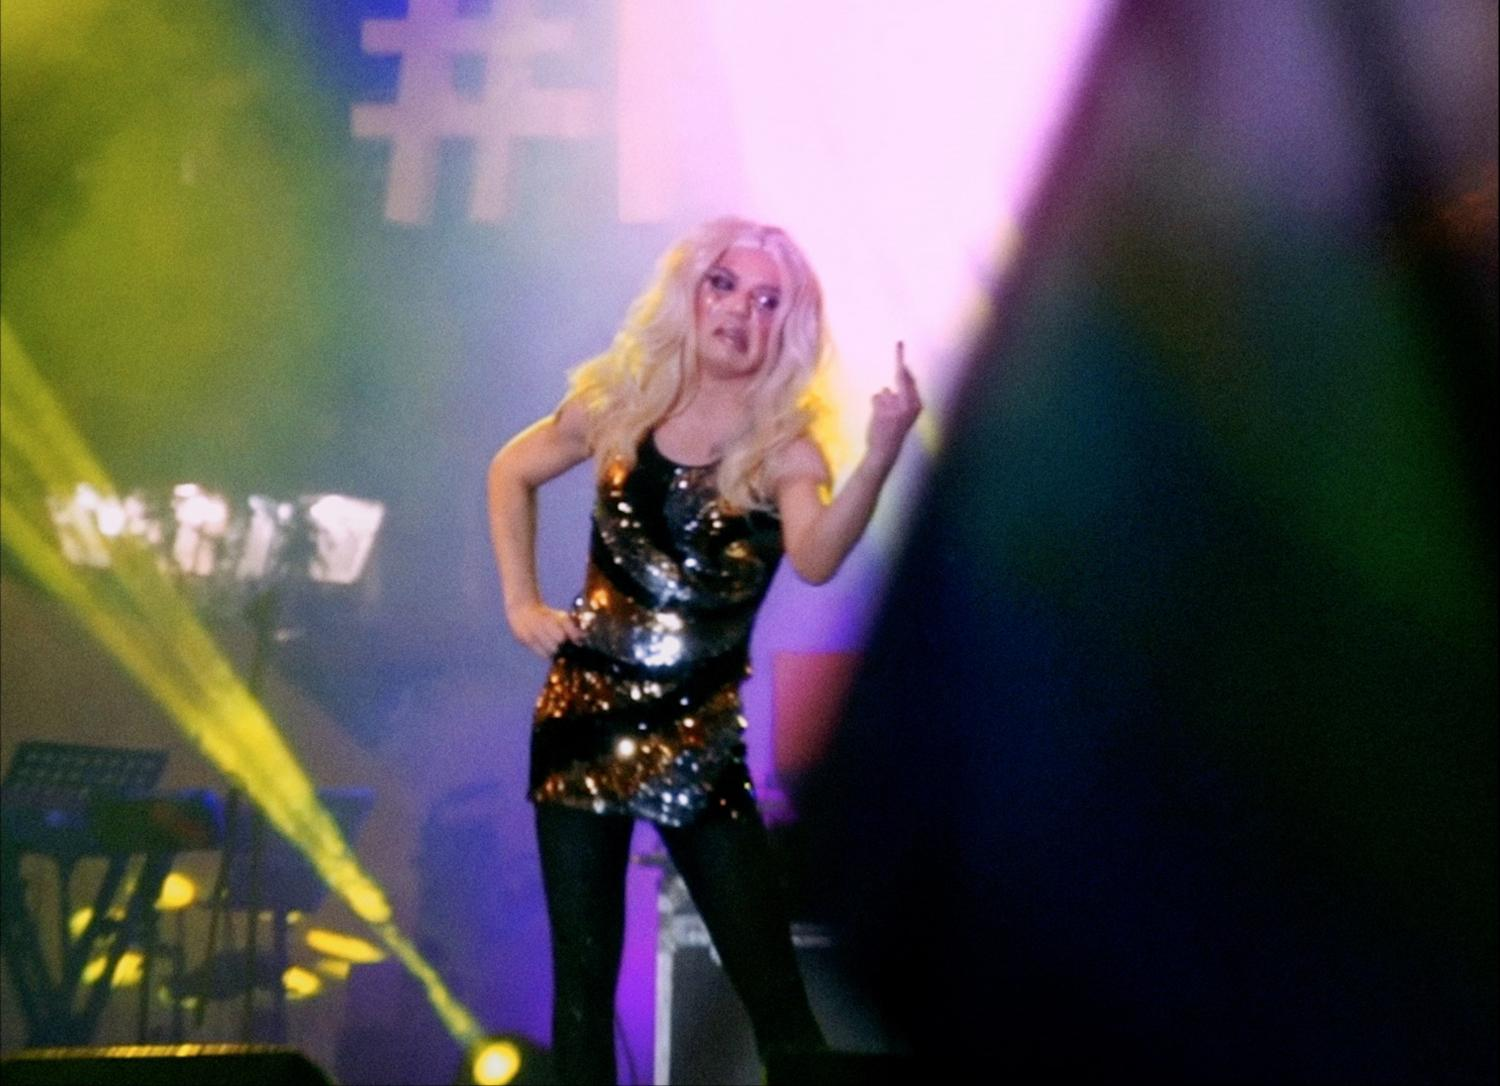 Video still of a drag queen on stage, scowling and giving the audience the middle finger.